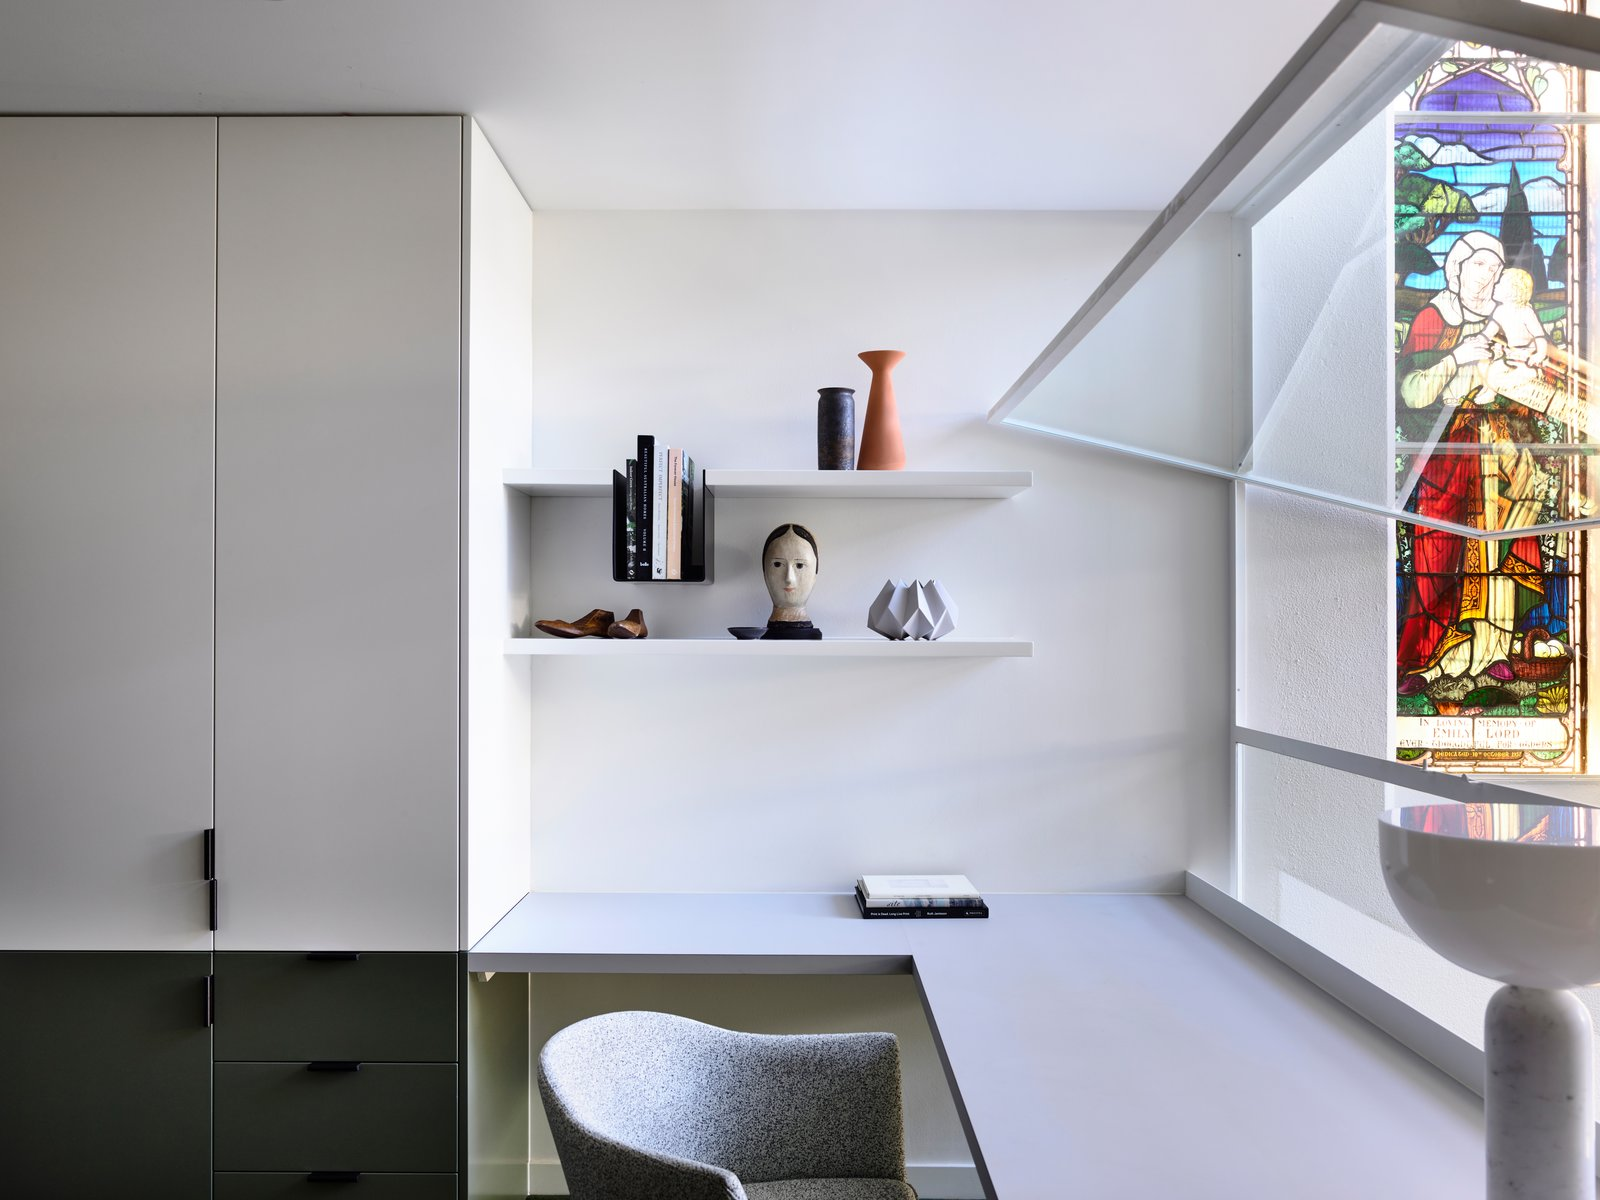 Office, Storage, Desk, Study Room Type, Shelves, Chair, and Lamps Introducing  Best Photos from Before & After: A 1930s Church in Melbourne Gets a Dramatic Conversion